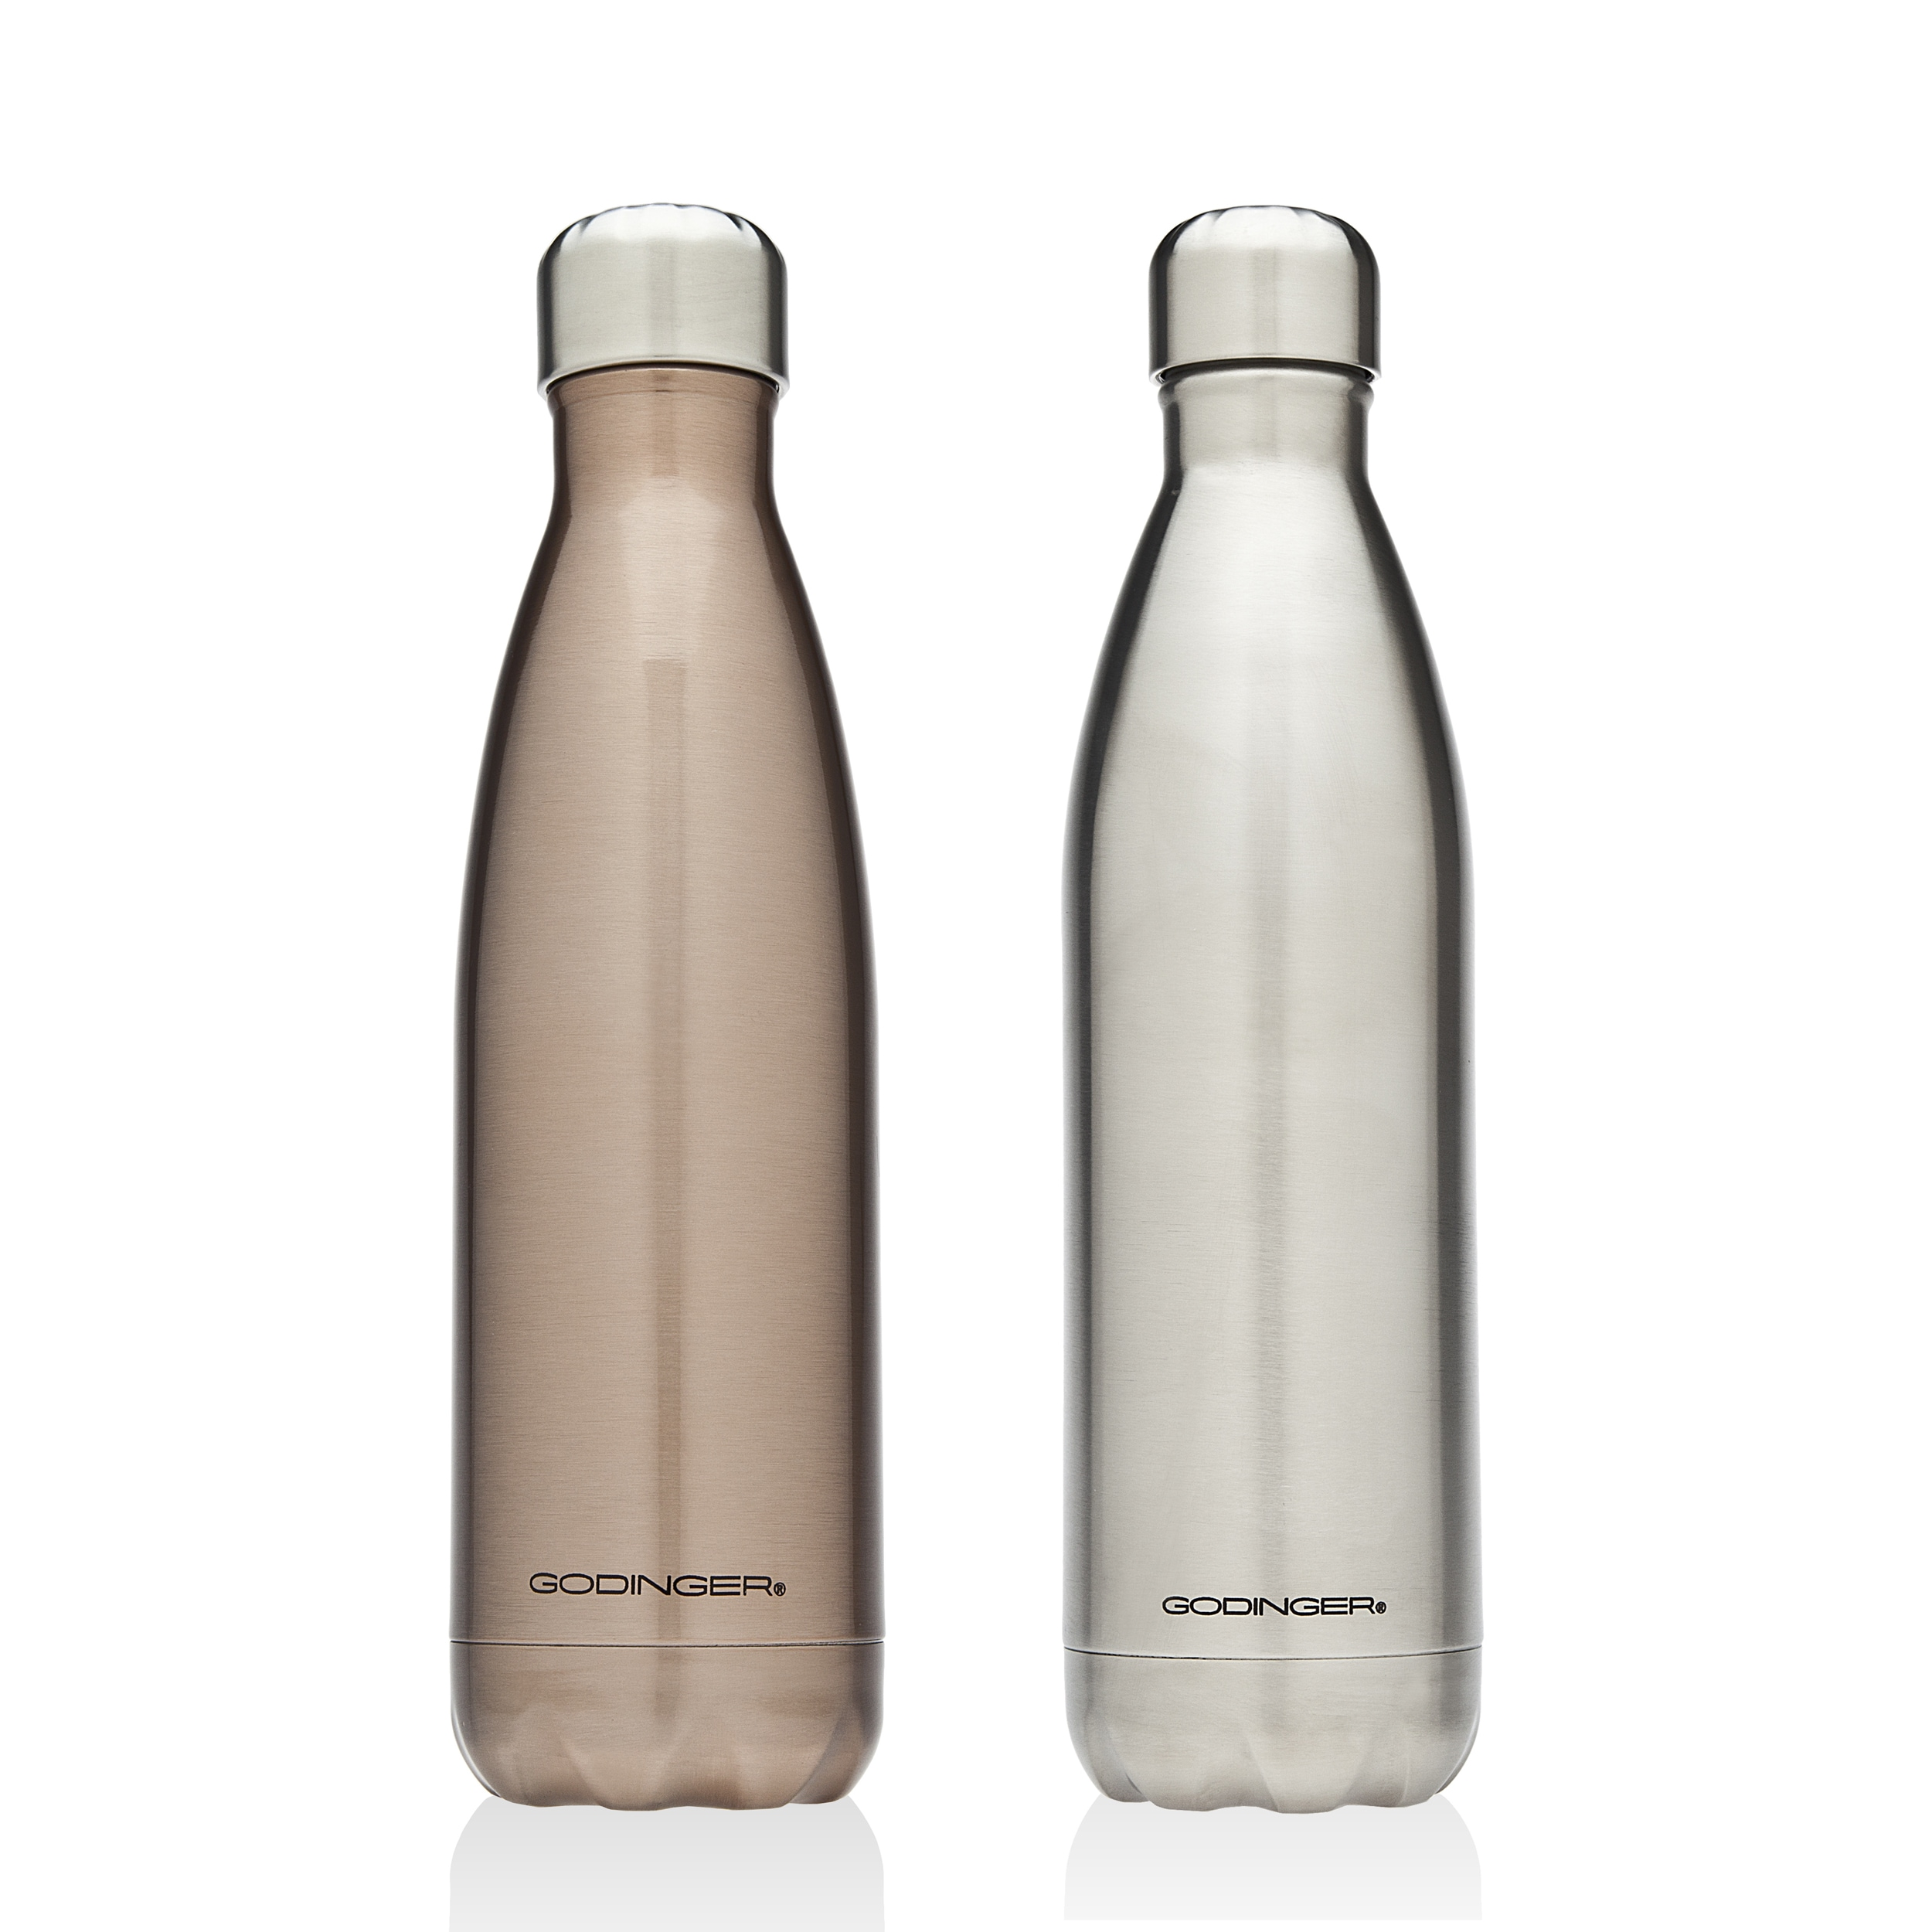 Godinger Rose Gold and Silver Stainless Steel Water Bottl...